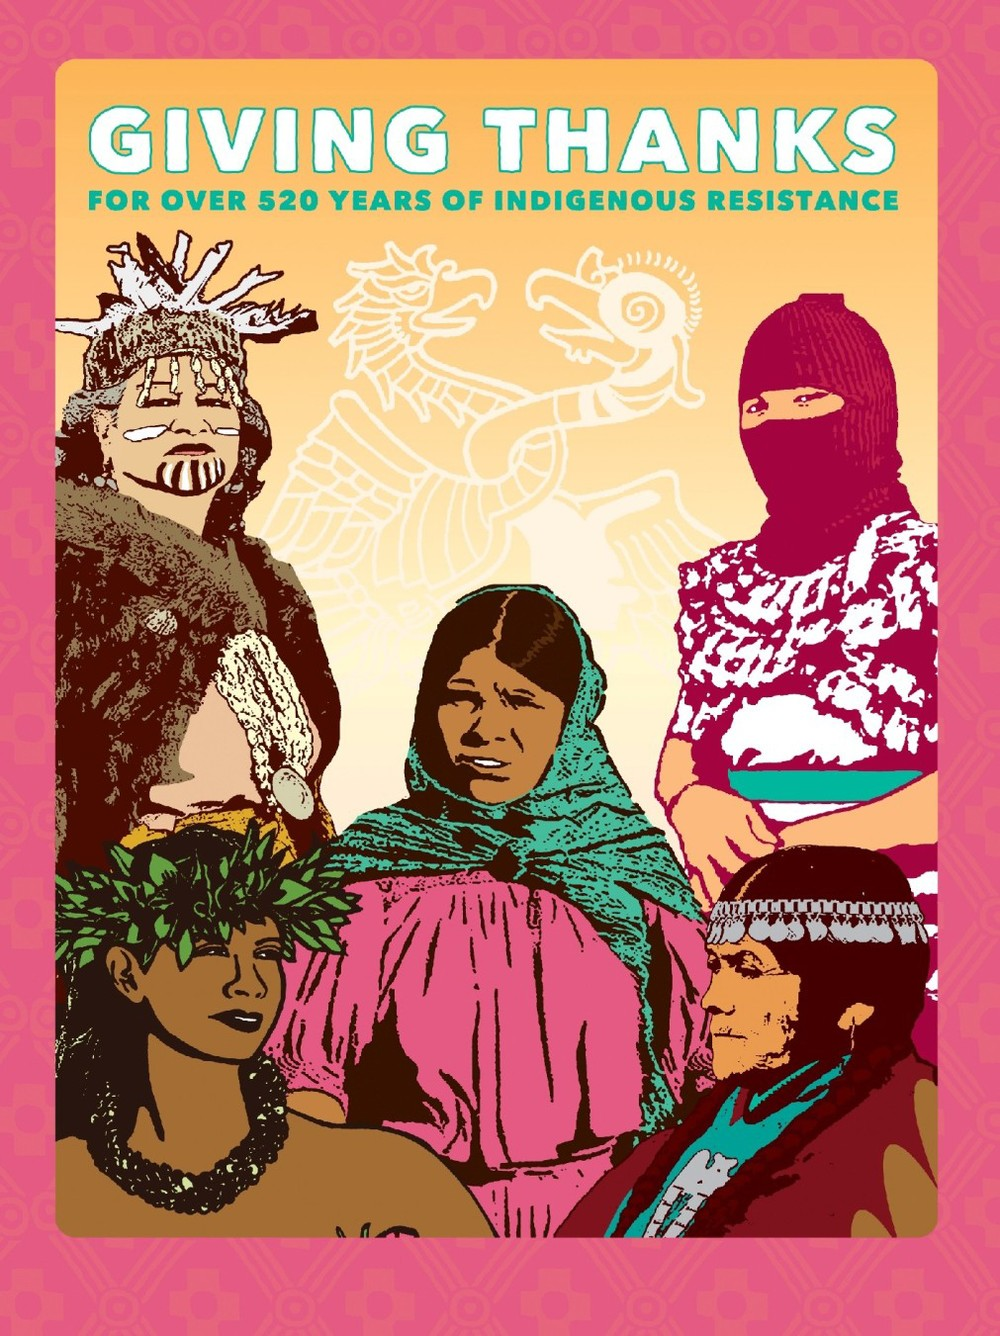 Melanie Cervantes - Giving Thanks for Over 520 Years of Resistance